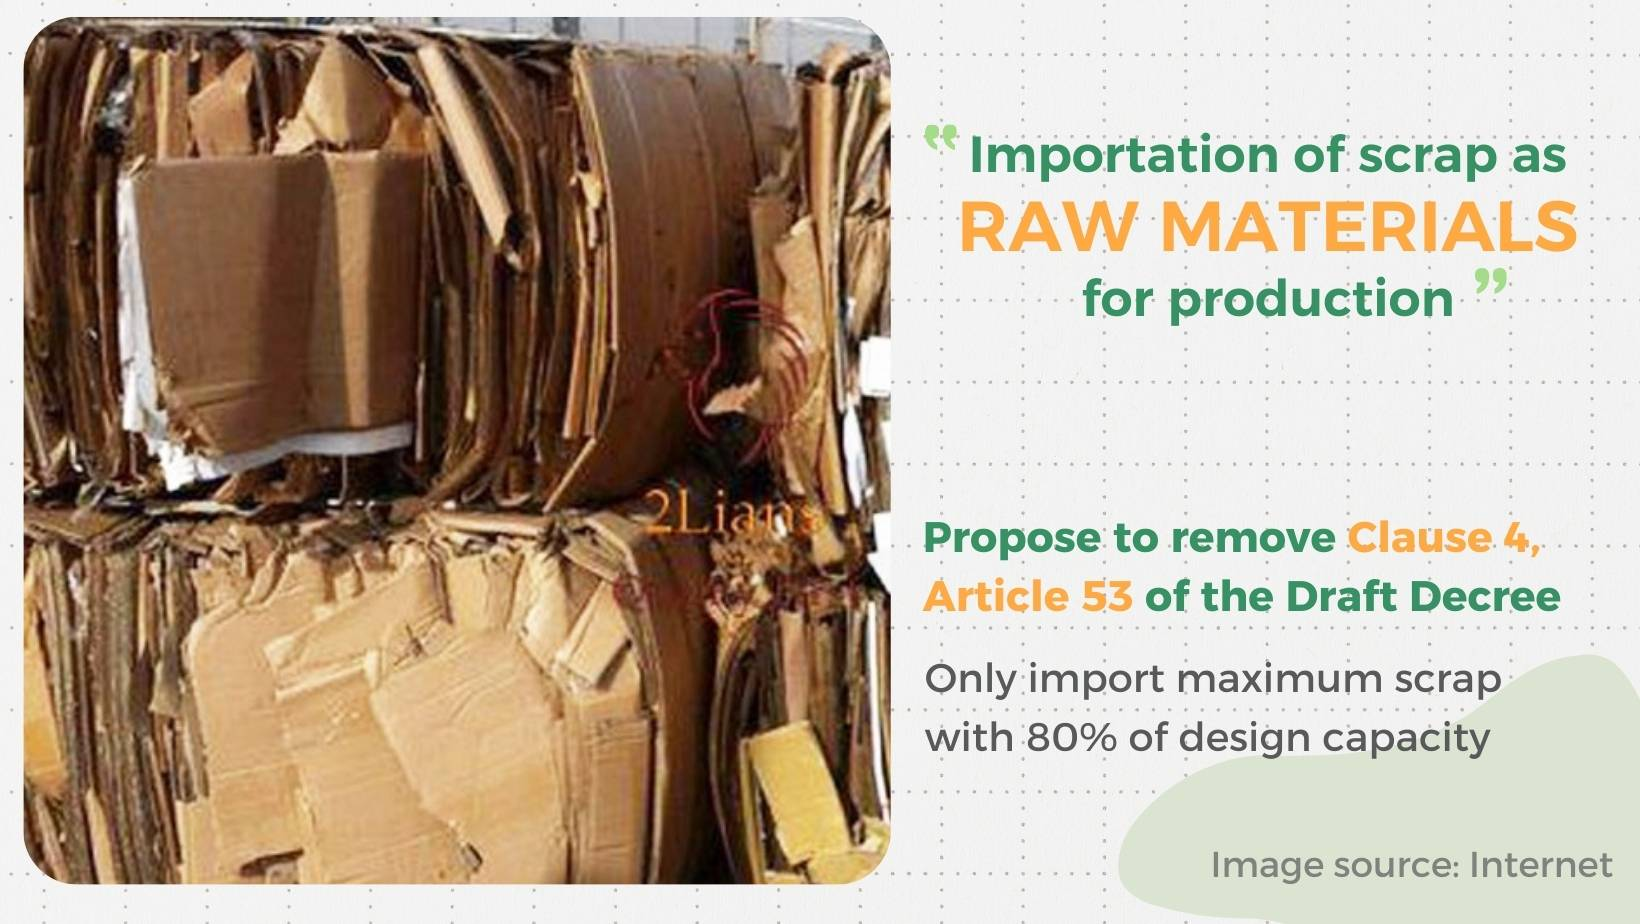 scrap importation as raw materials for production